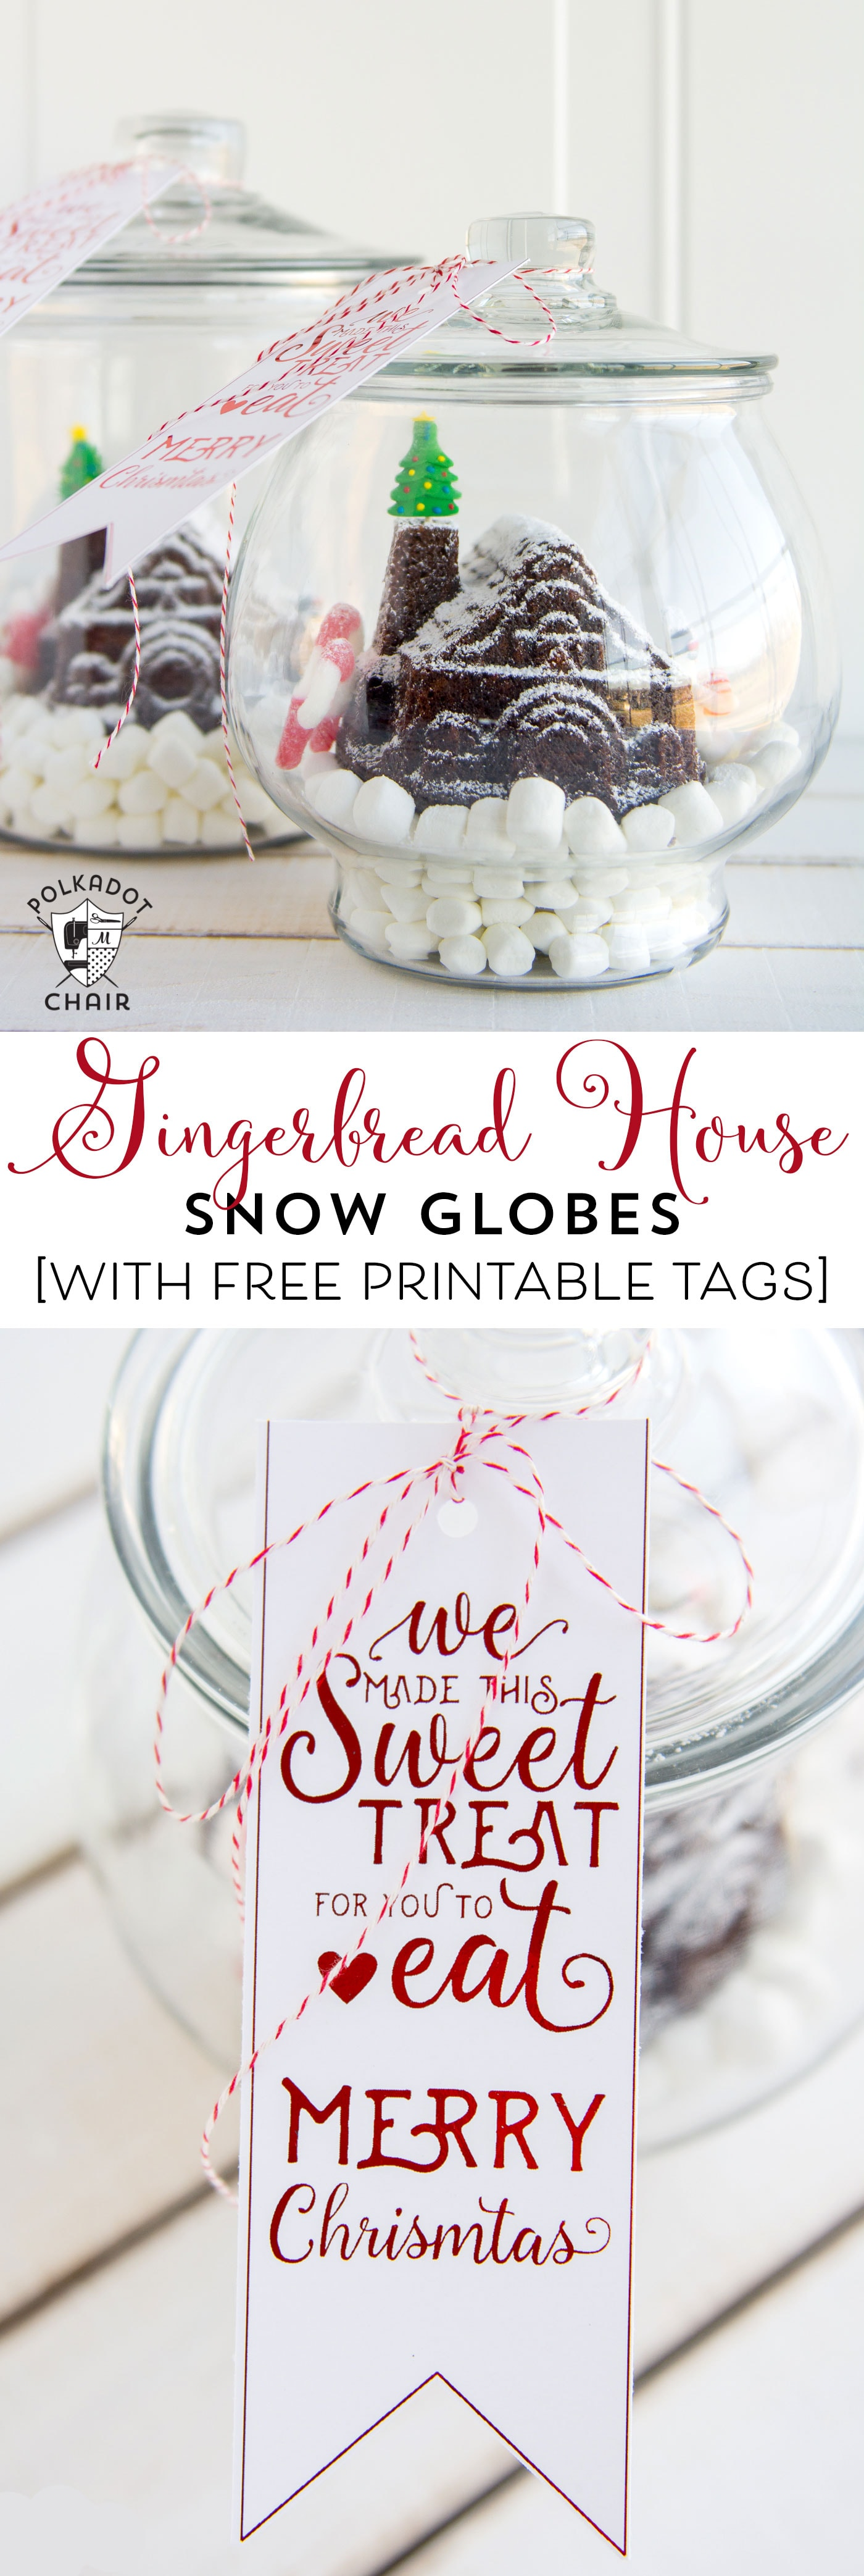 Cute DIY Gingerbread House Snow Globes and Free Printable Tags - The ...